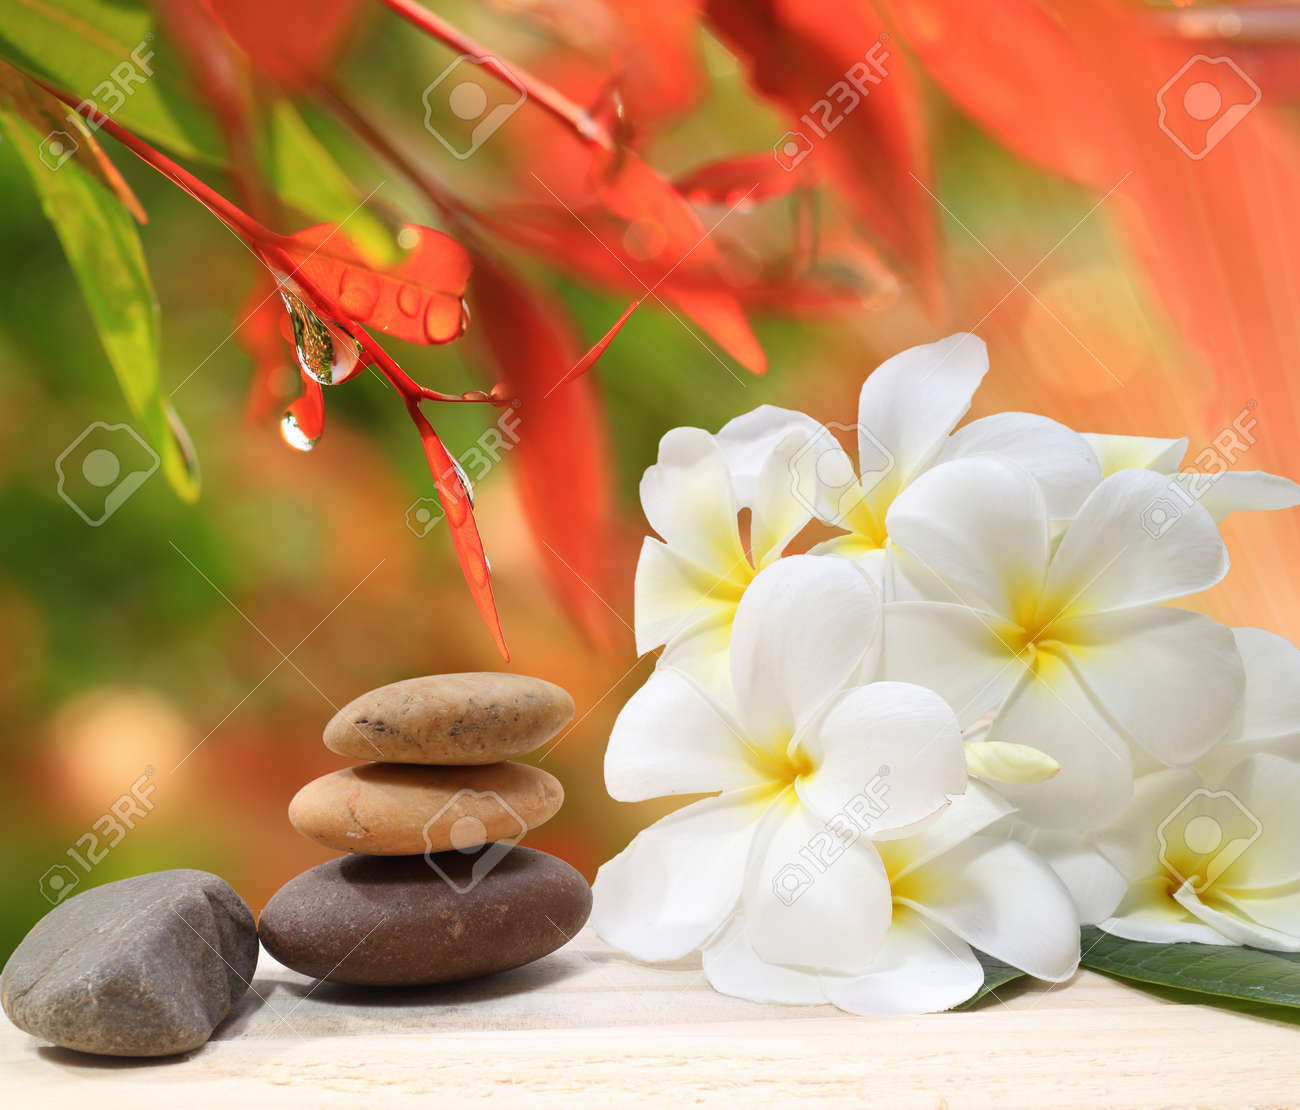 Zen spa concept background - Zen massage stones with frangipani plumeria flower and Water drops on the nature background - 48959582